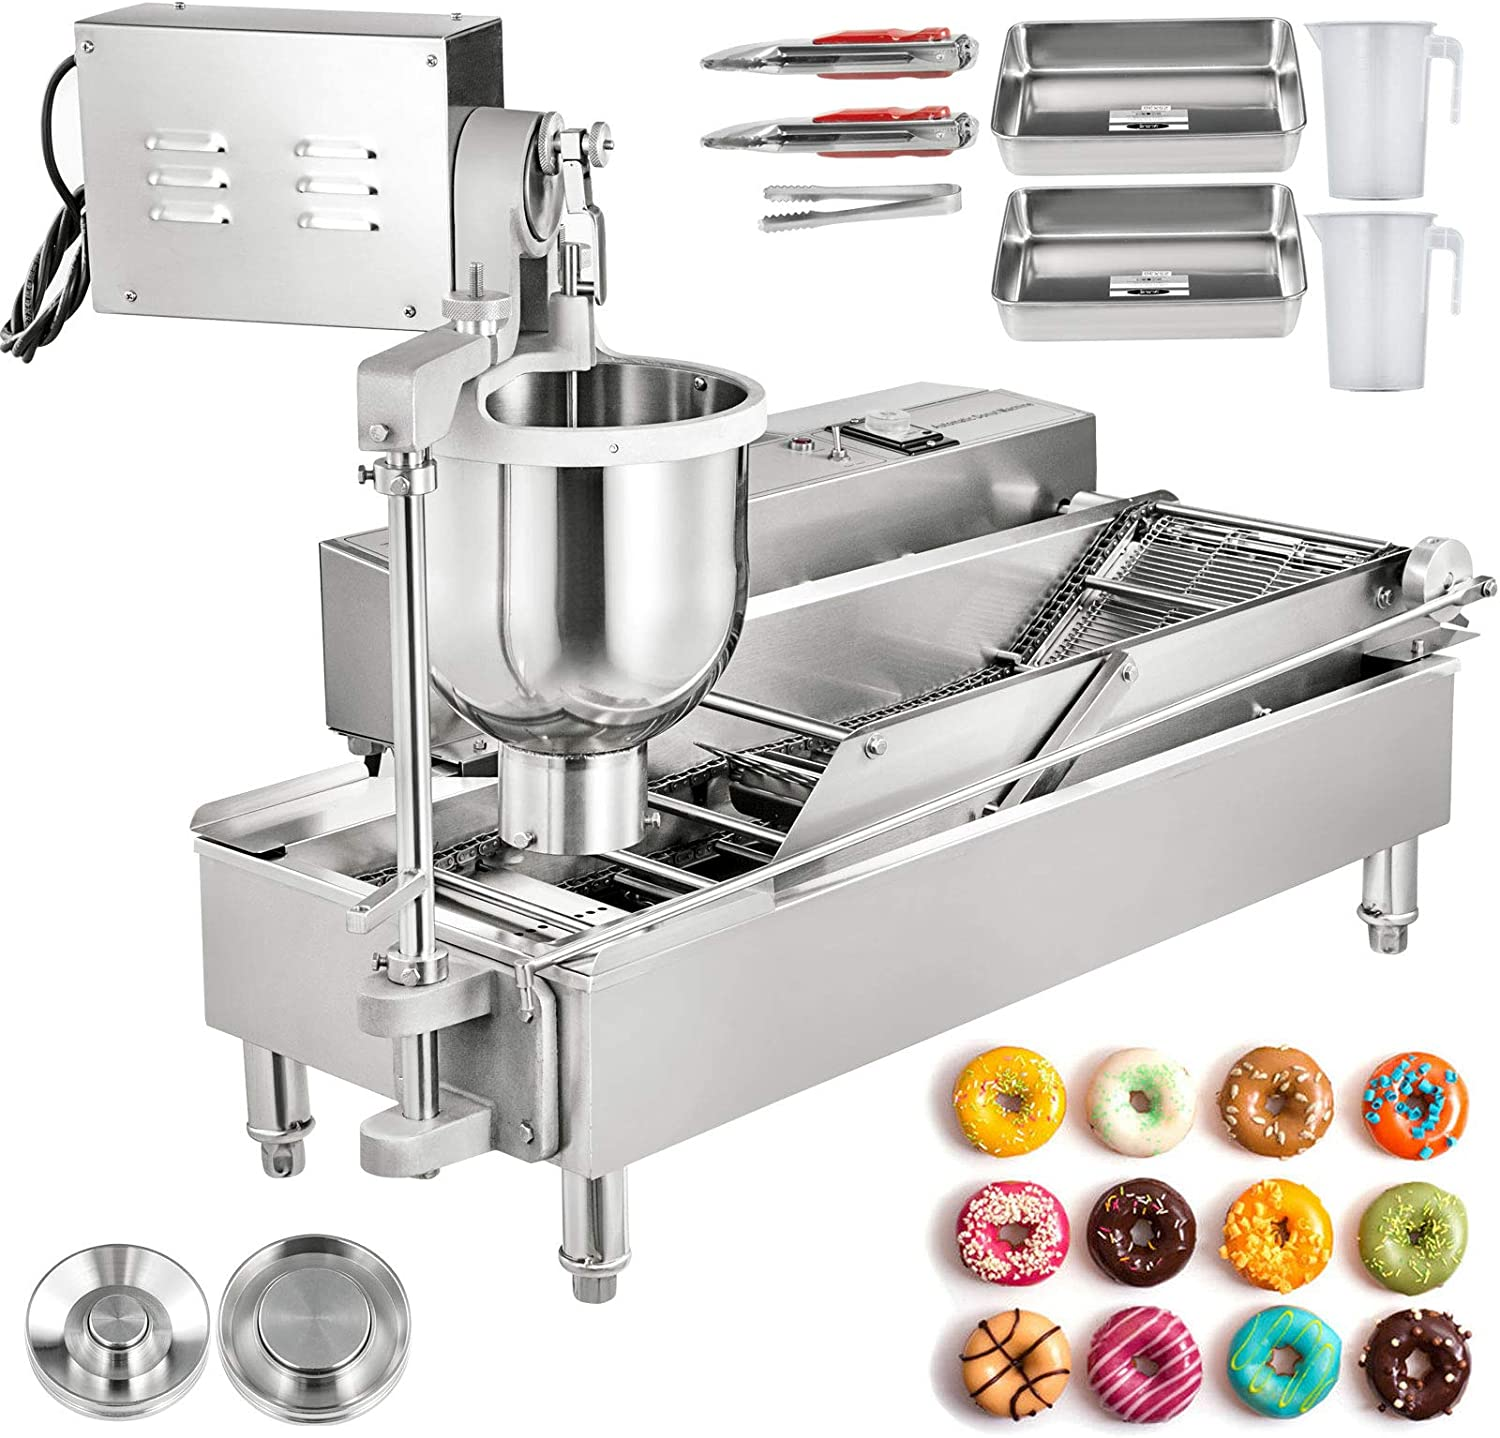 VBENLEM Commercial Automatic Donut Making Machine, 2 Rows Auto Doughnut Maker, 7L Hopper Donut Maker with 3 Sizes Molds, 110V Doughnut Fryer, 304 Stainless Steel Auto Donuts